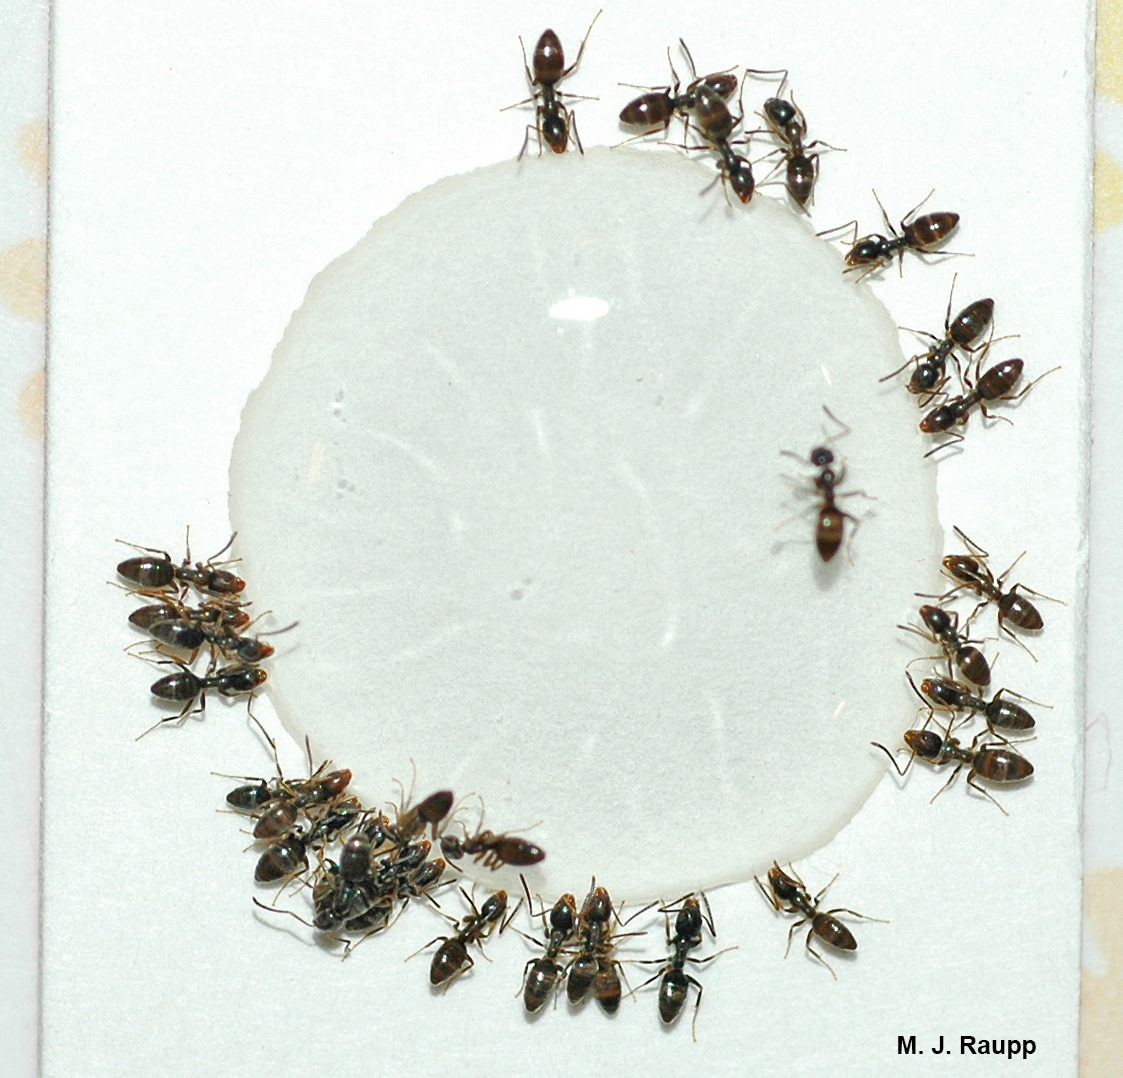 Odorous house ants circle for their last meal, a lethal drink of sugary bait laced with poison.